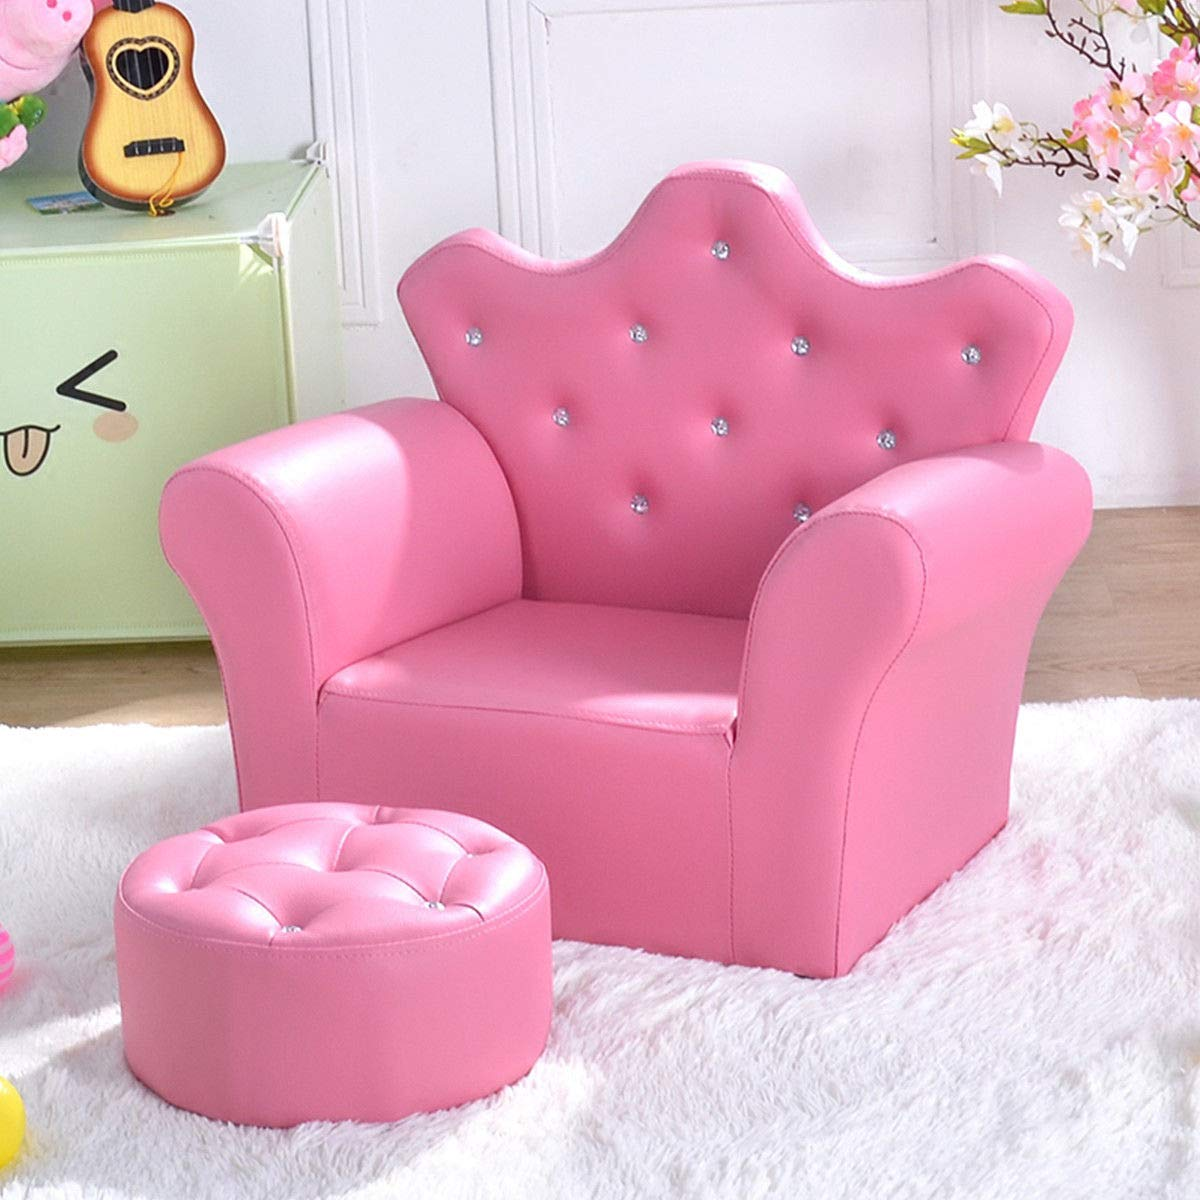 Costzon Kids Sofa Chair